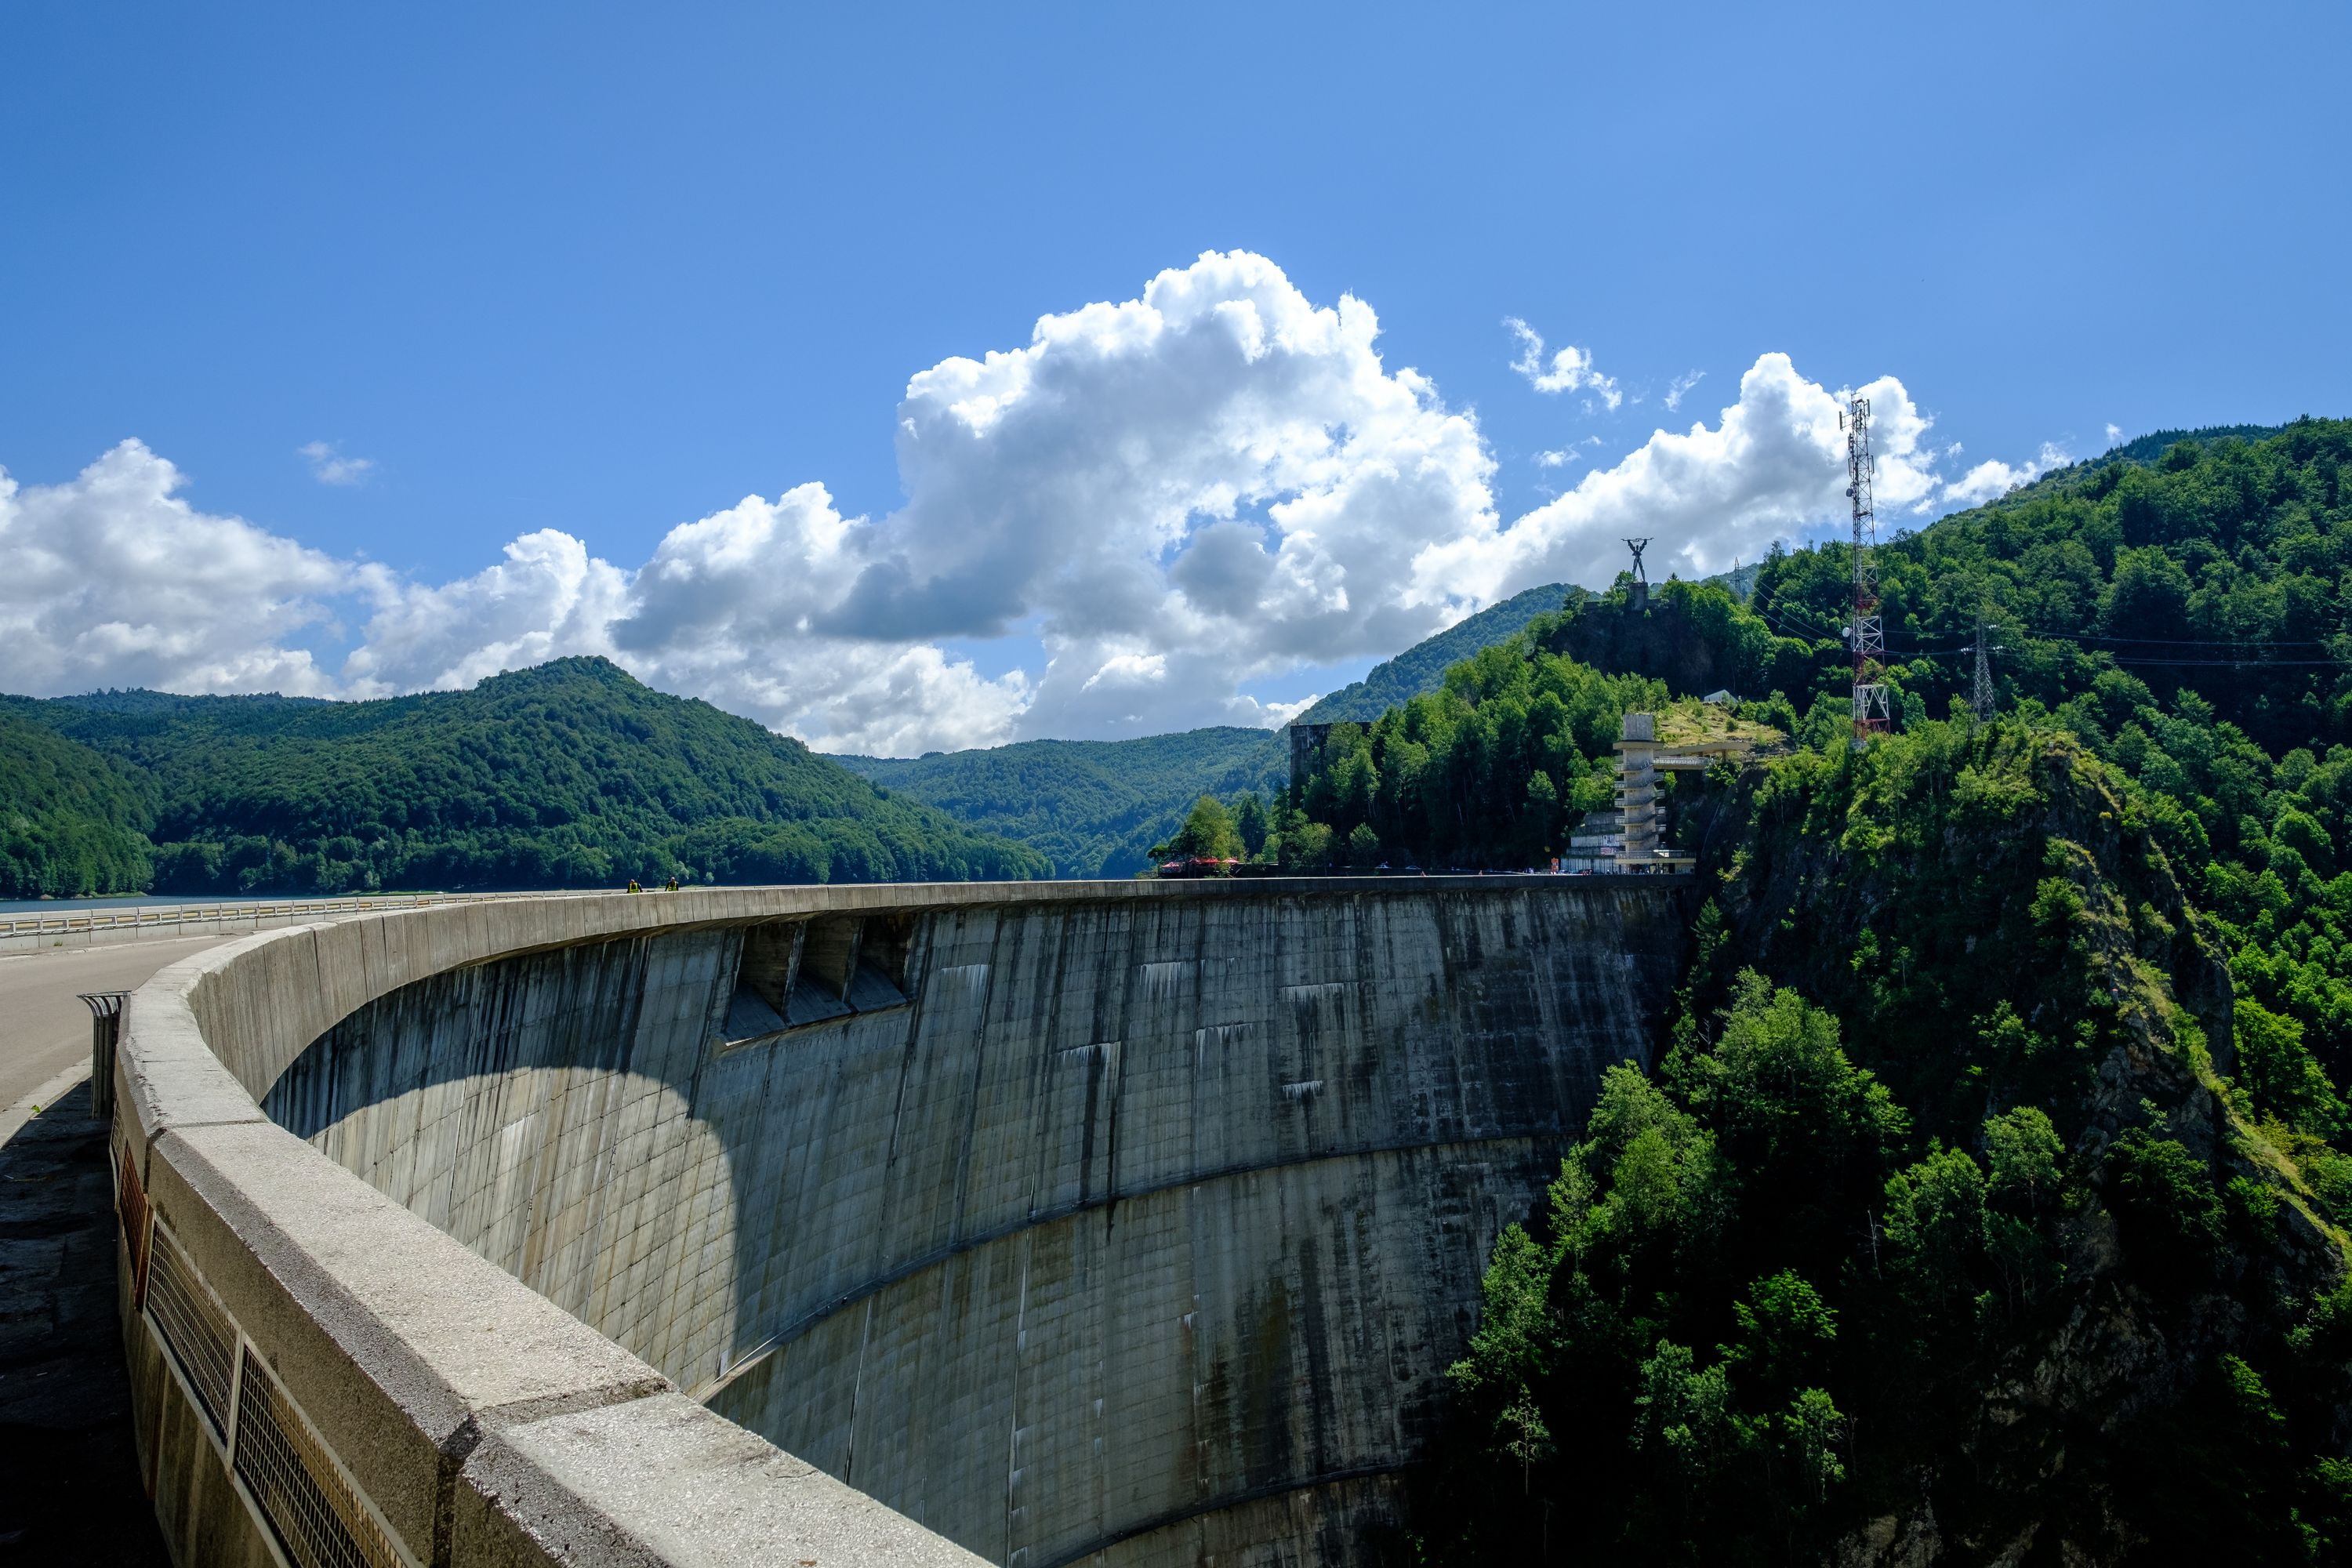 More than 500ft tall, the Vidraru dam is one of the largest in Europe. Fujifilm X-Pro 2 + 14mm: 1/300 @ ƒ/7.1 ISO 400